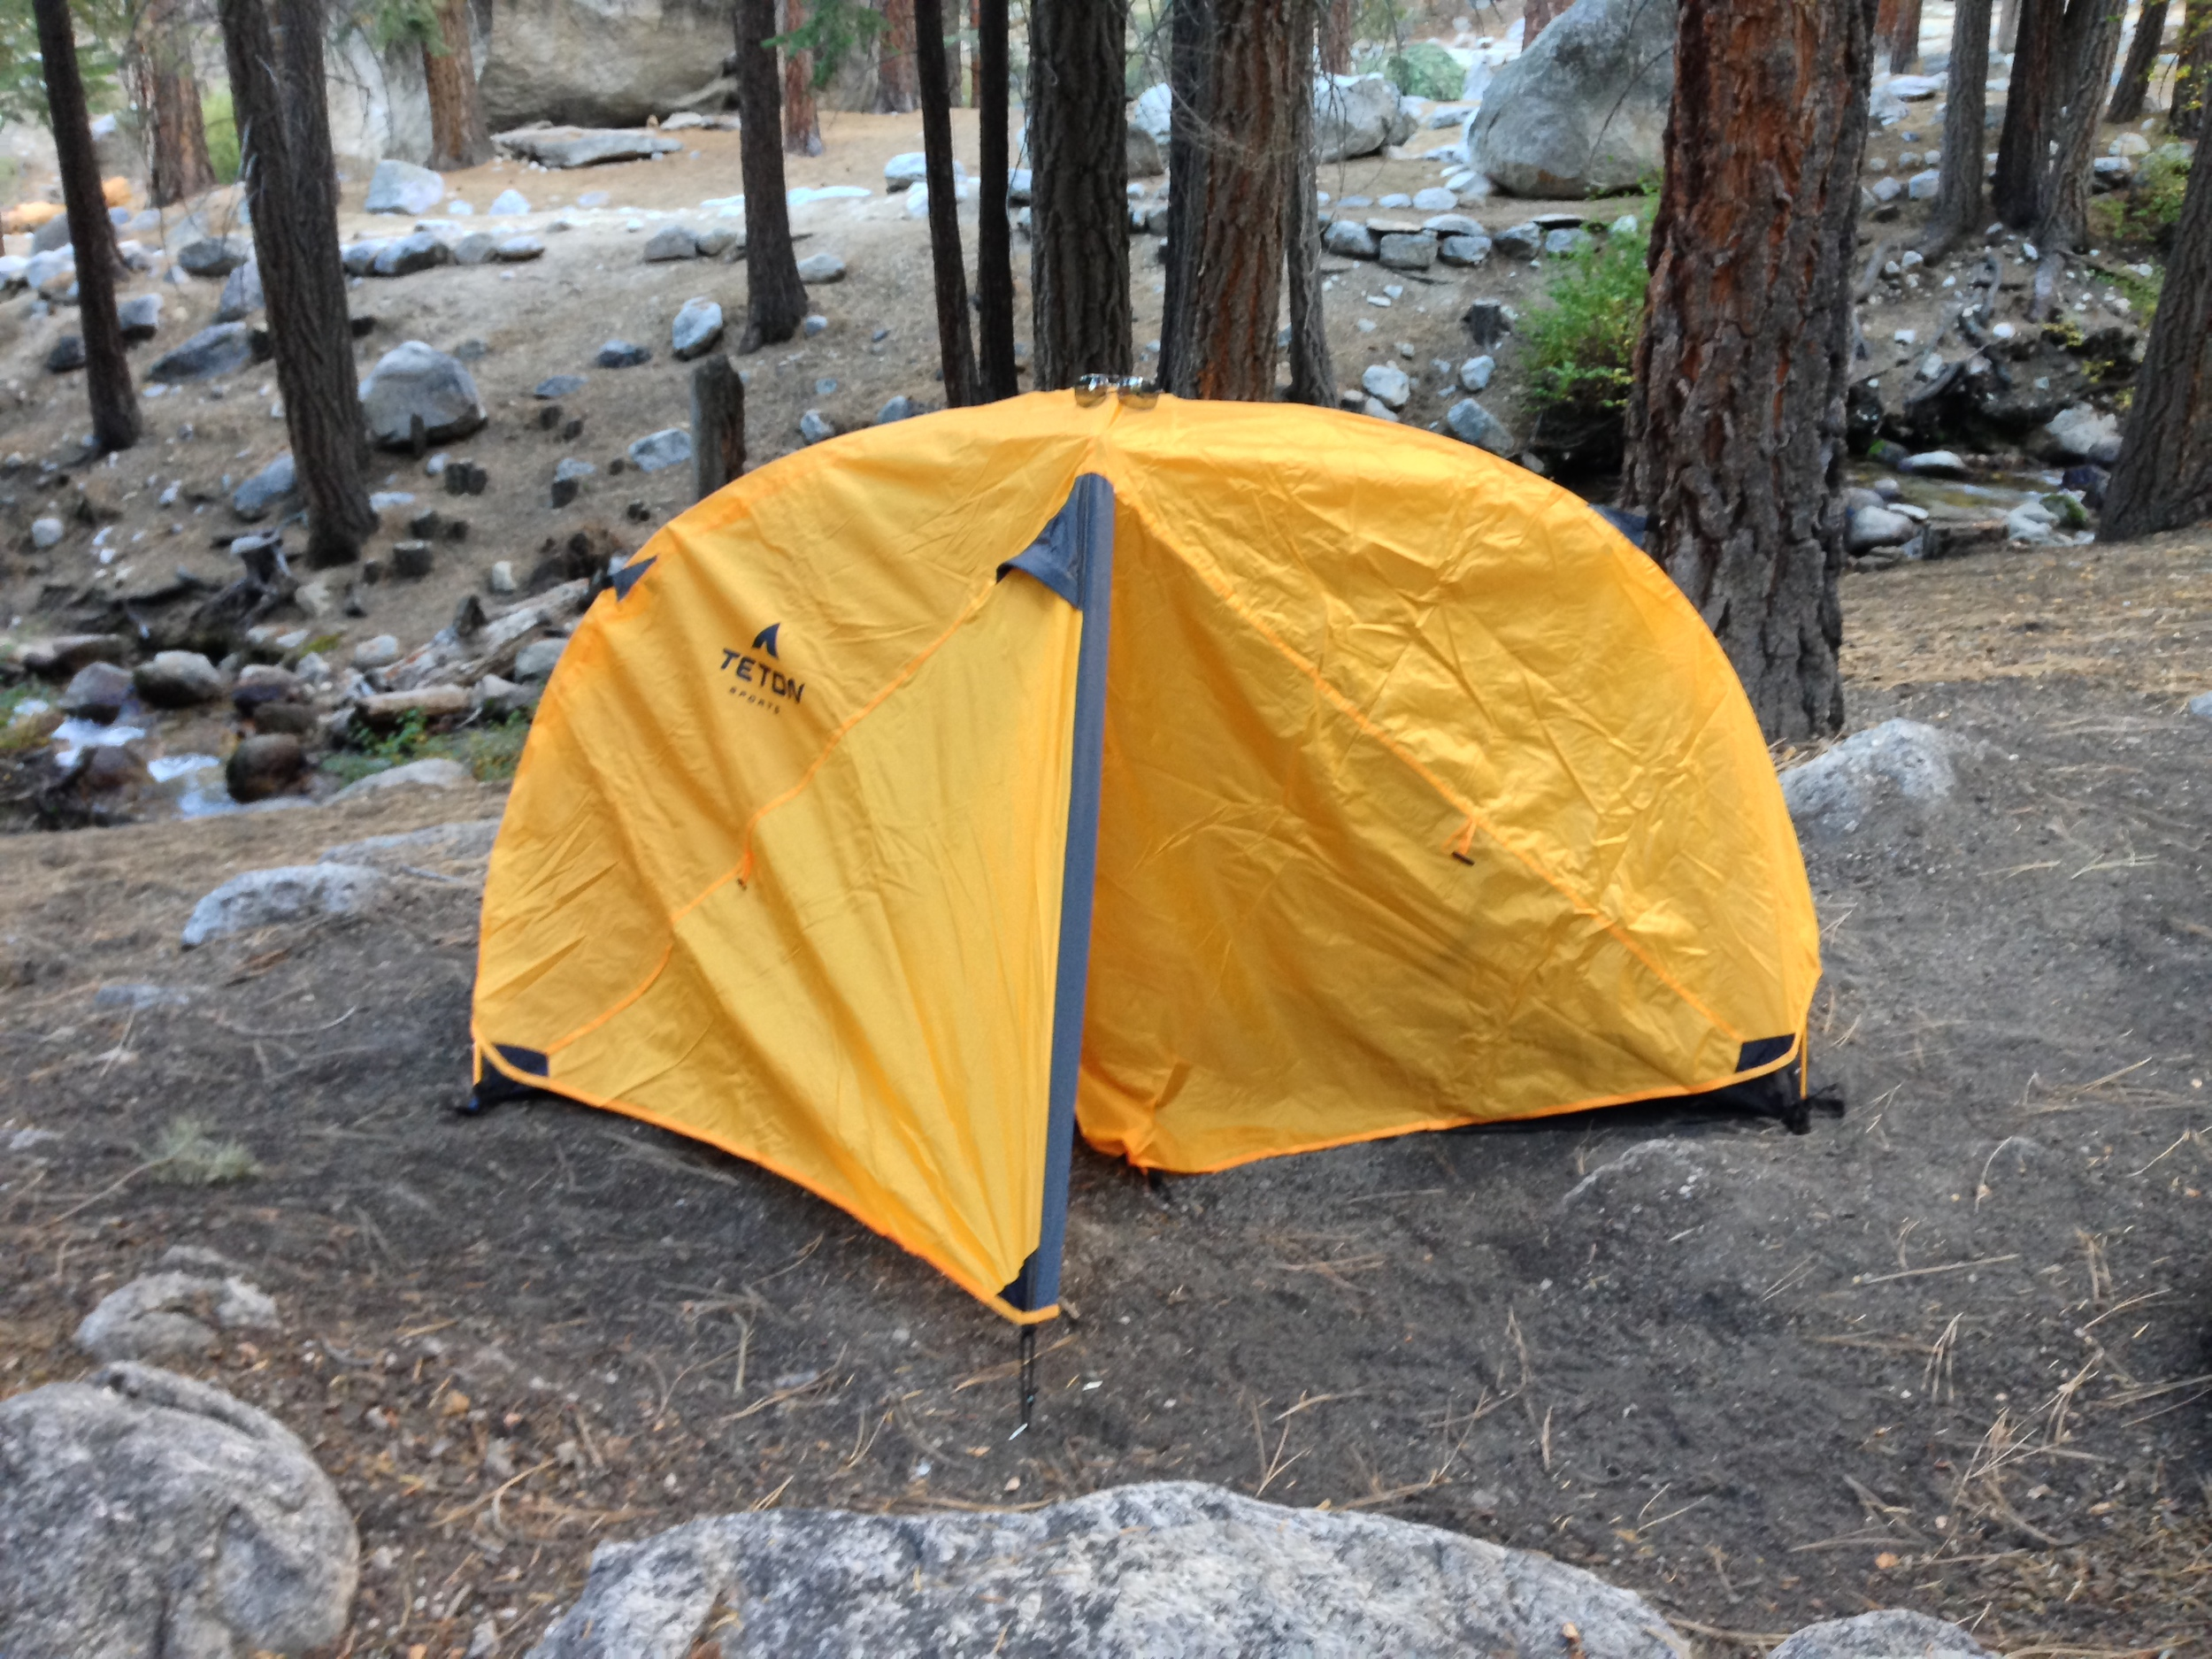 Gear Review TETON Sports Mountain Ultra 1 Tent & Gear Review: TETON Sports Mountain Ultra 1 Tent u2014 The Last Adventurer